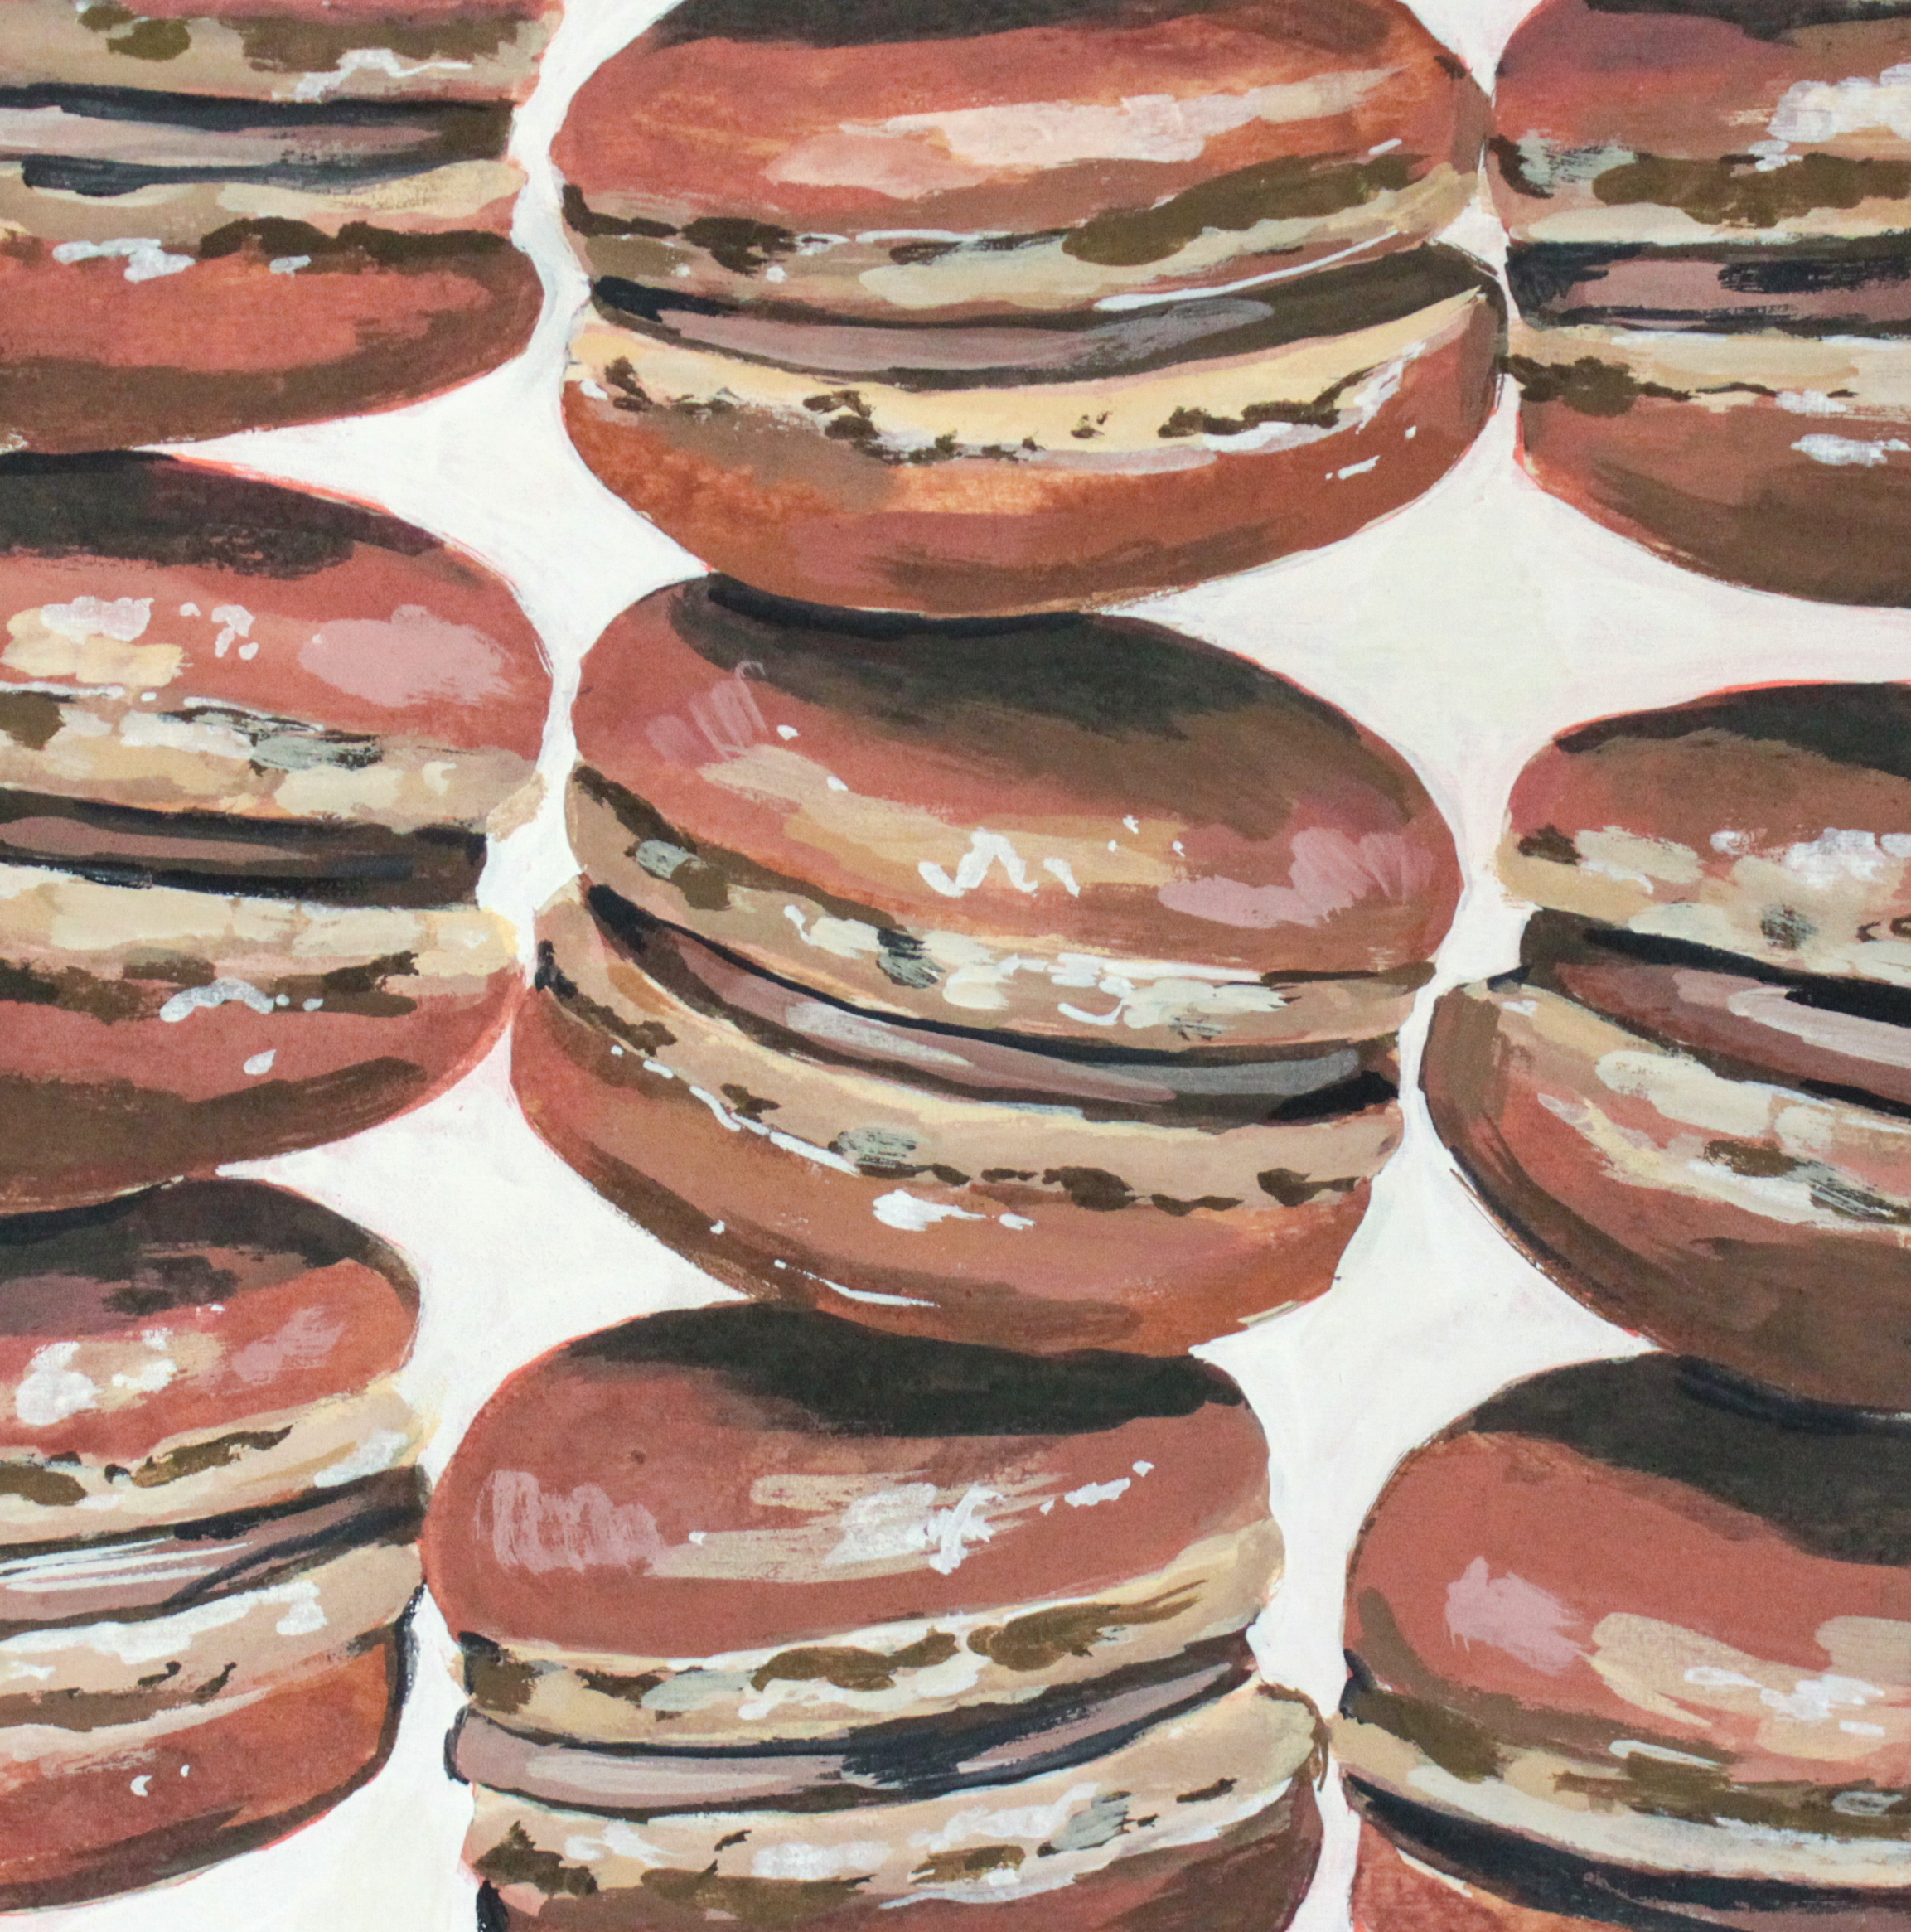 "Chocolat - 10"" x 10"" gouache on panel$225Inspired by the Chocolate Macarons @ F.I.G"